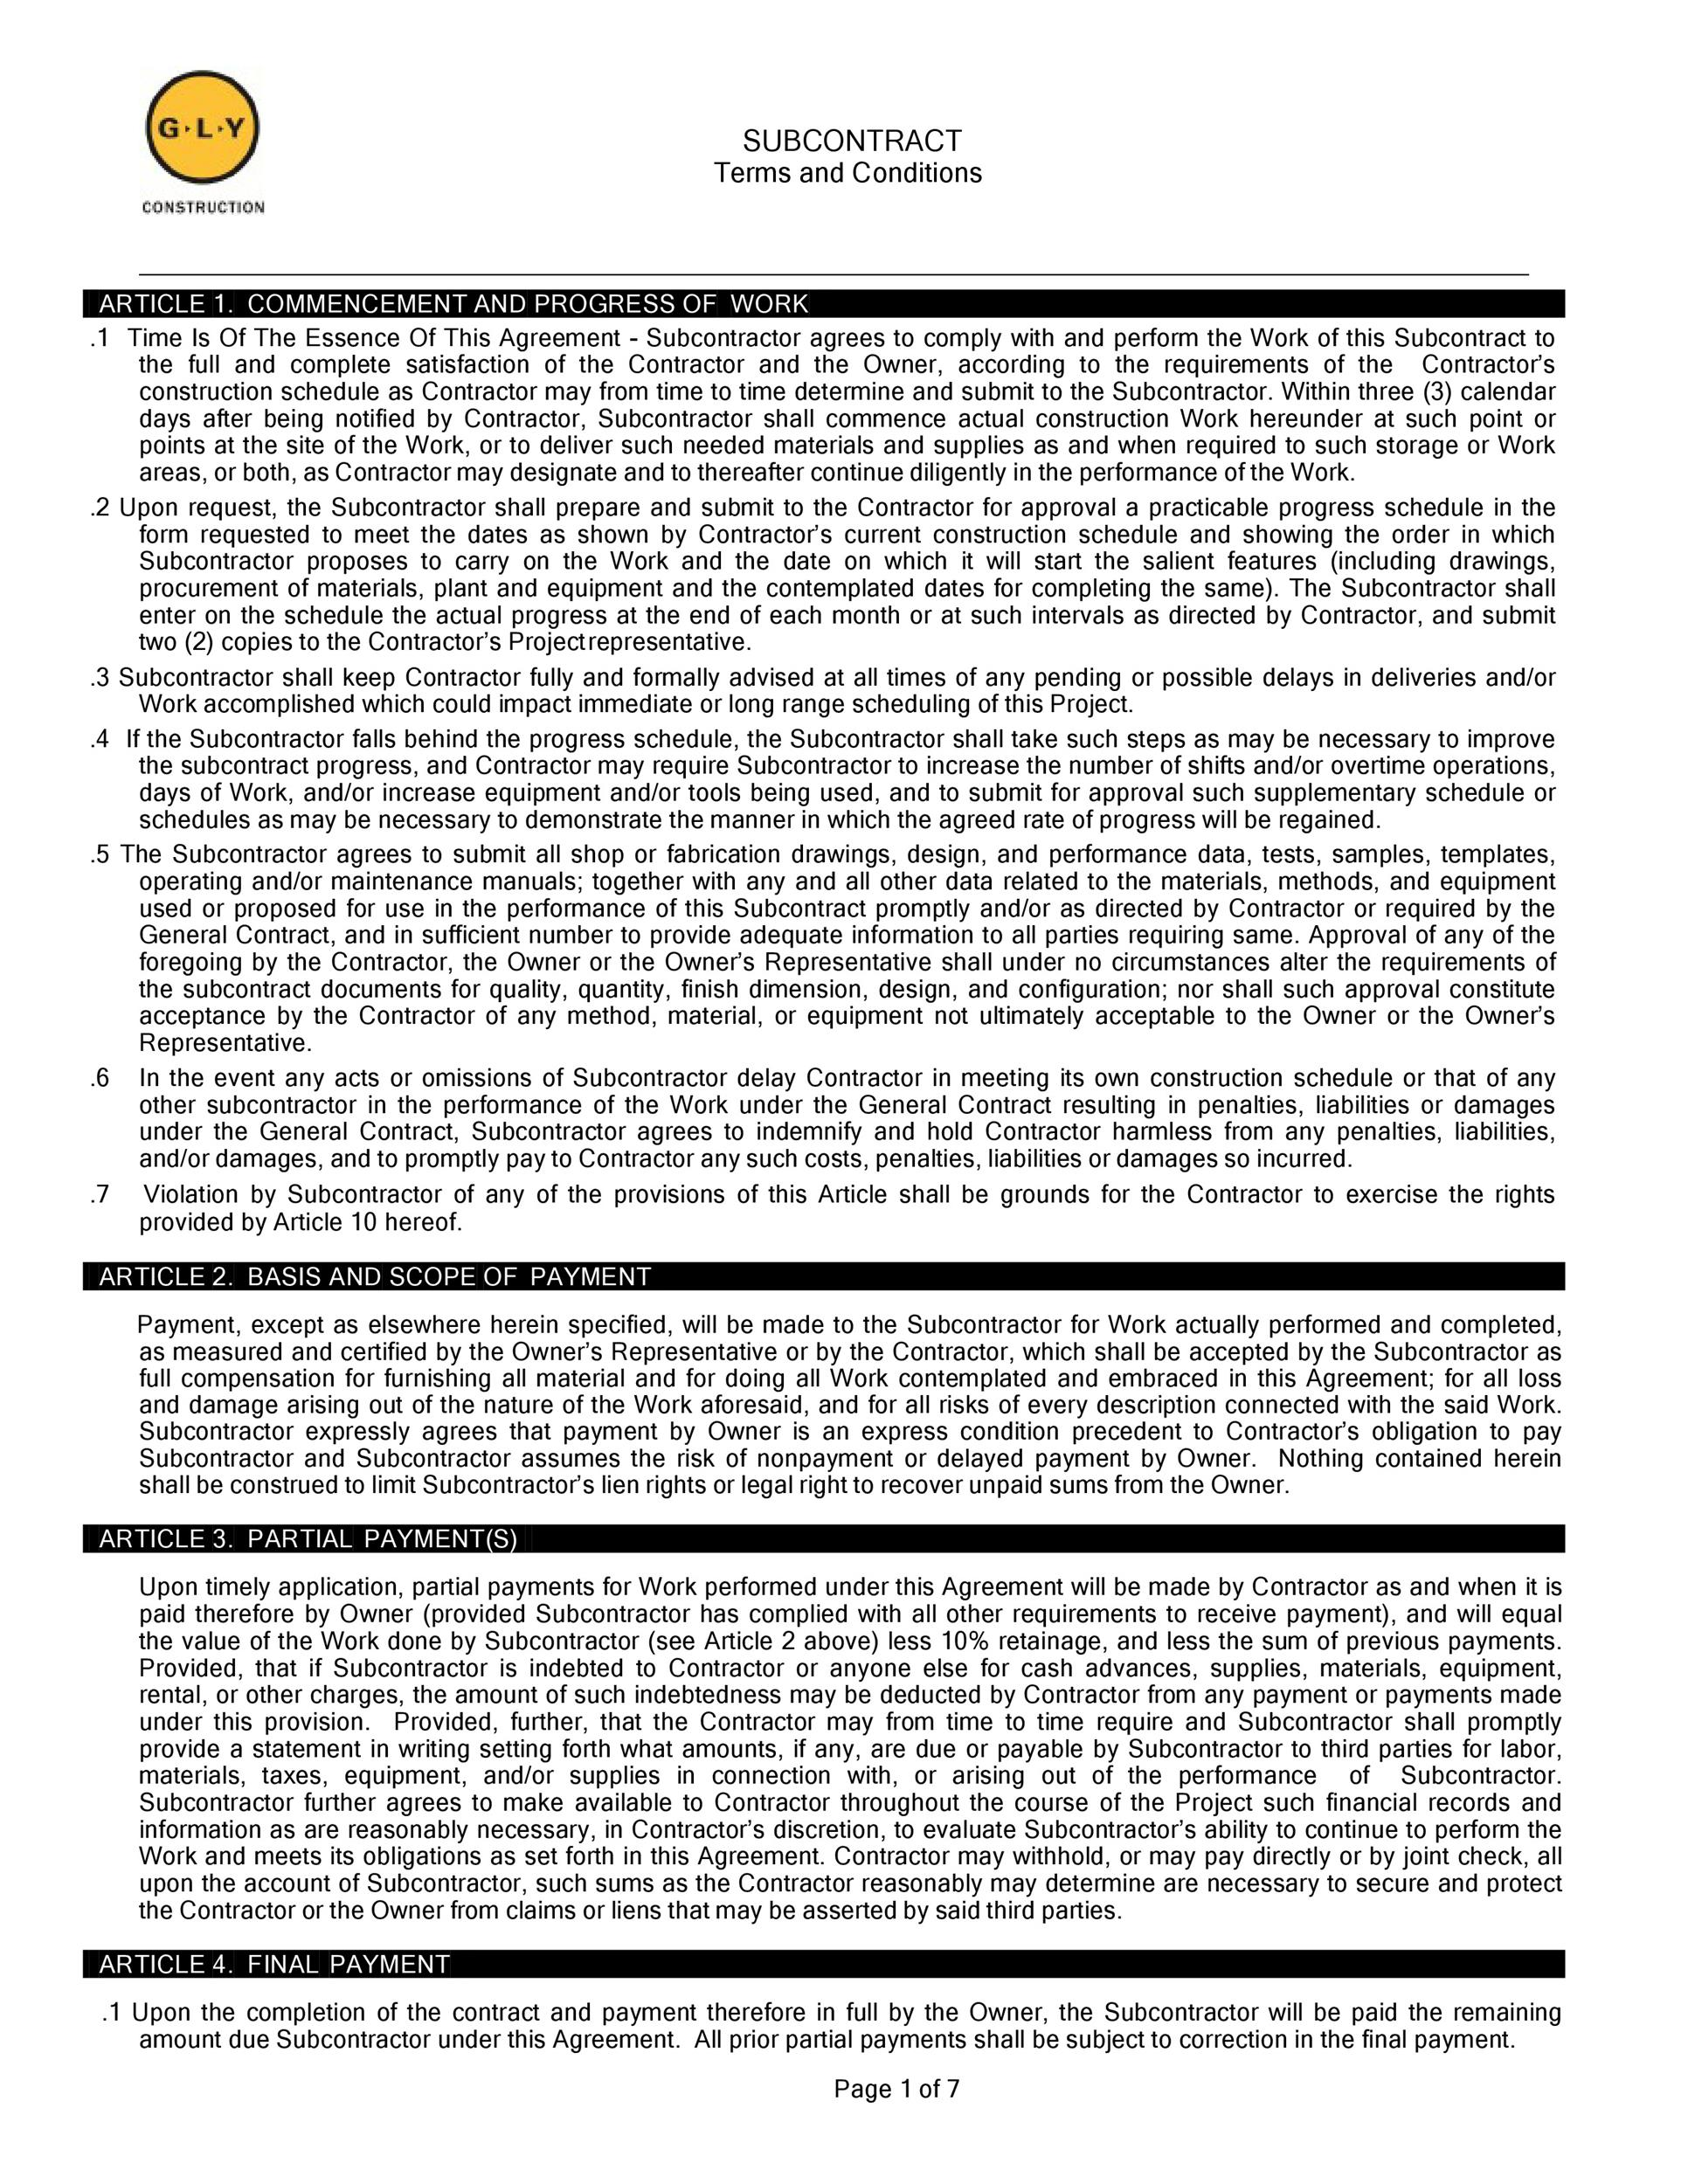 Free terms and conditions template 36